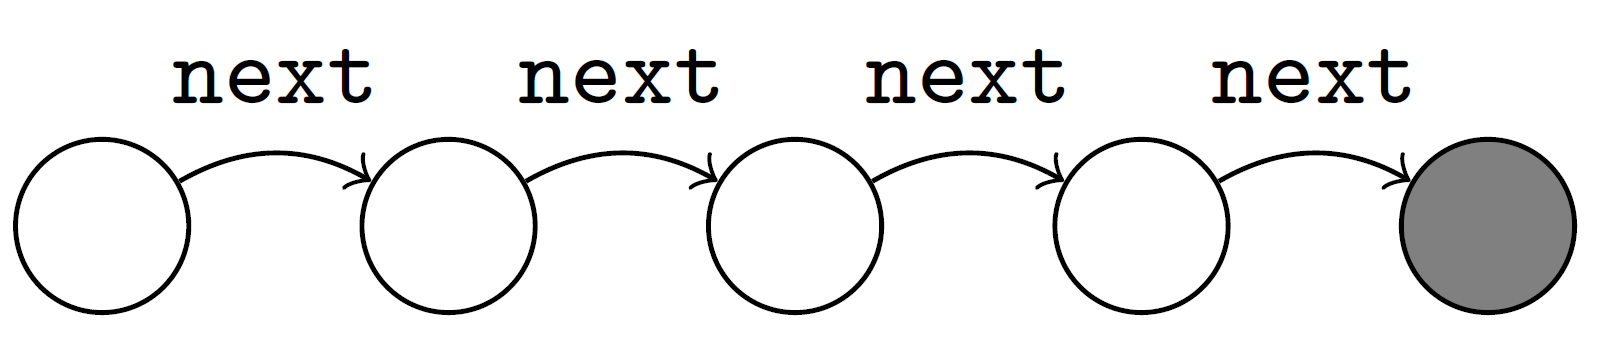 singly-linked list